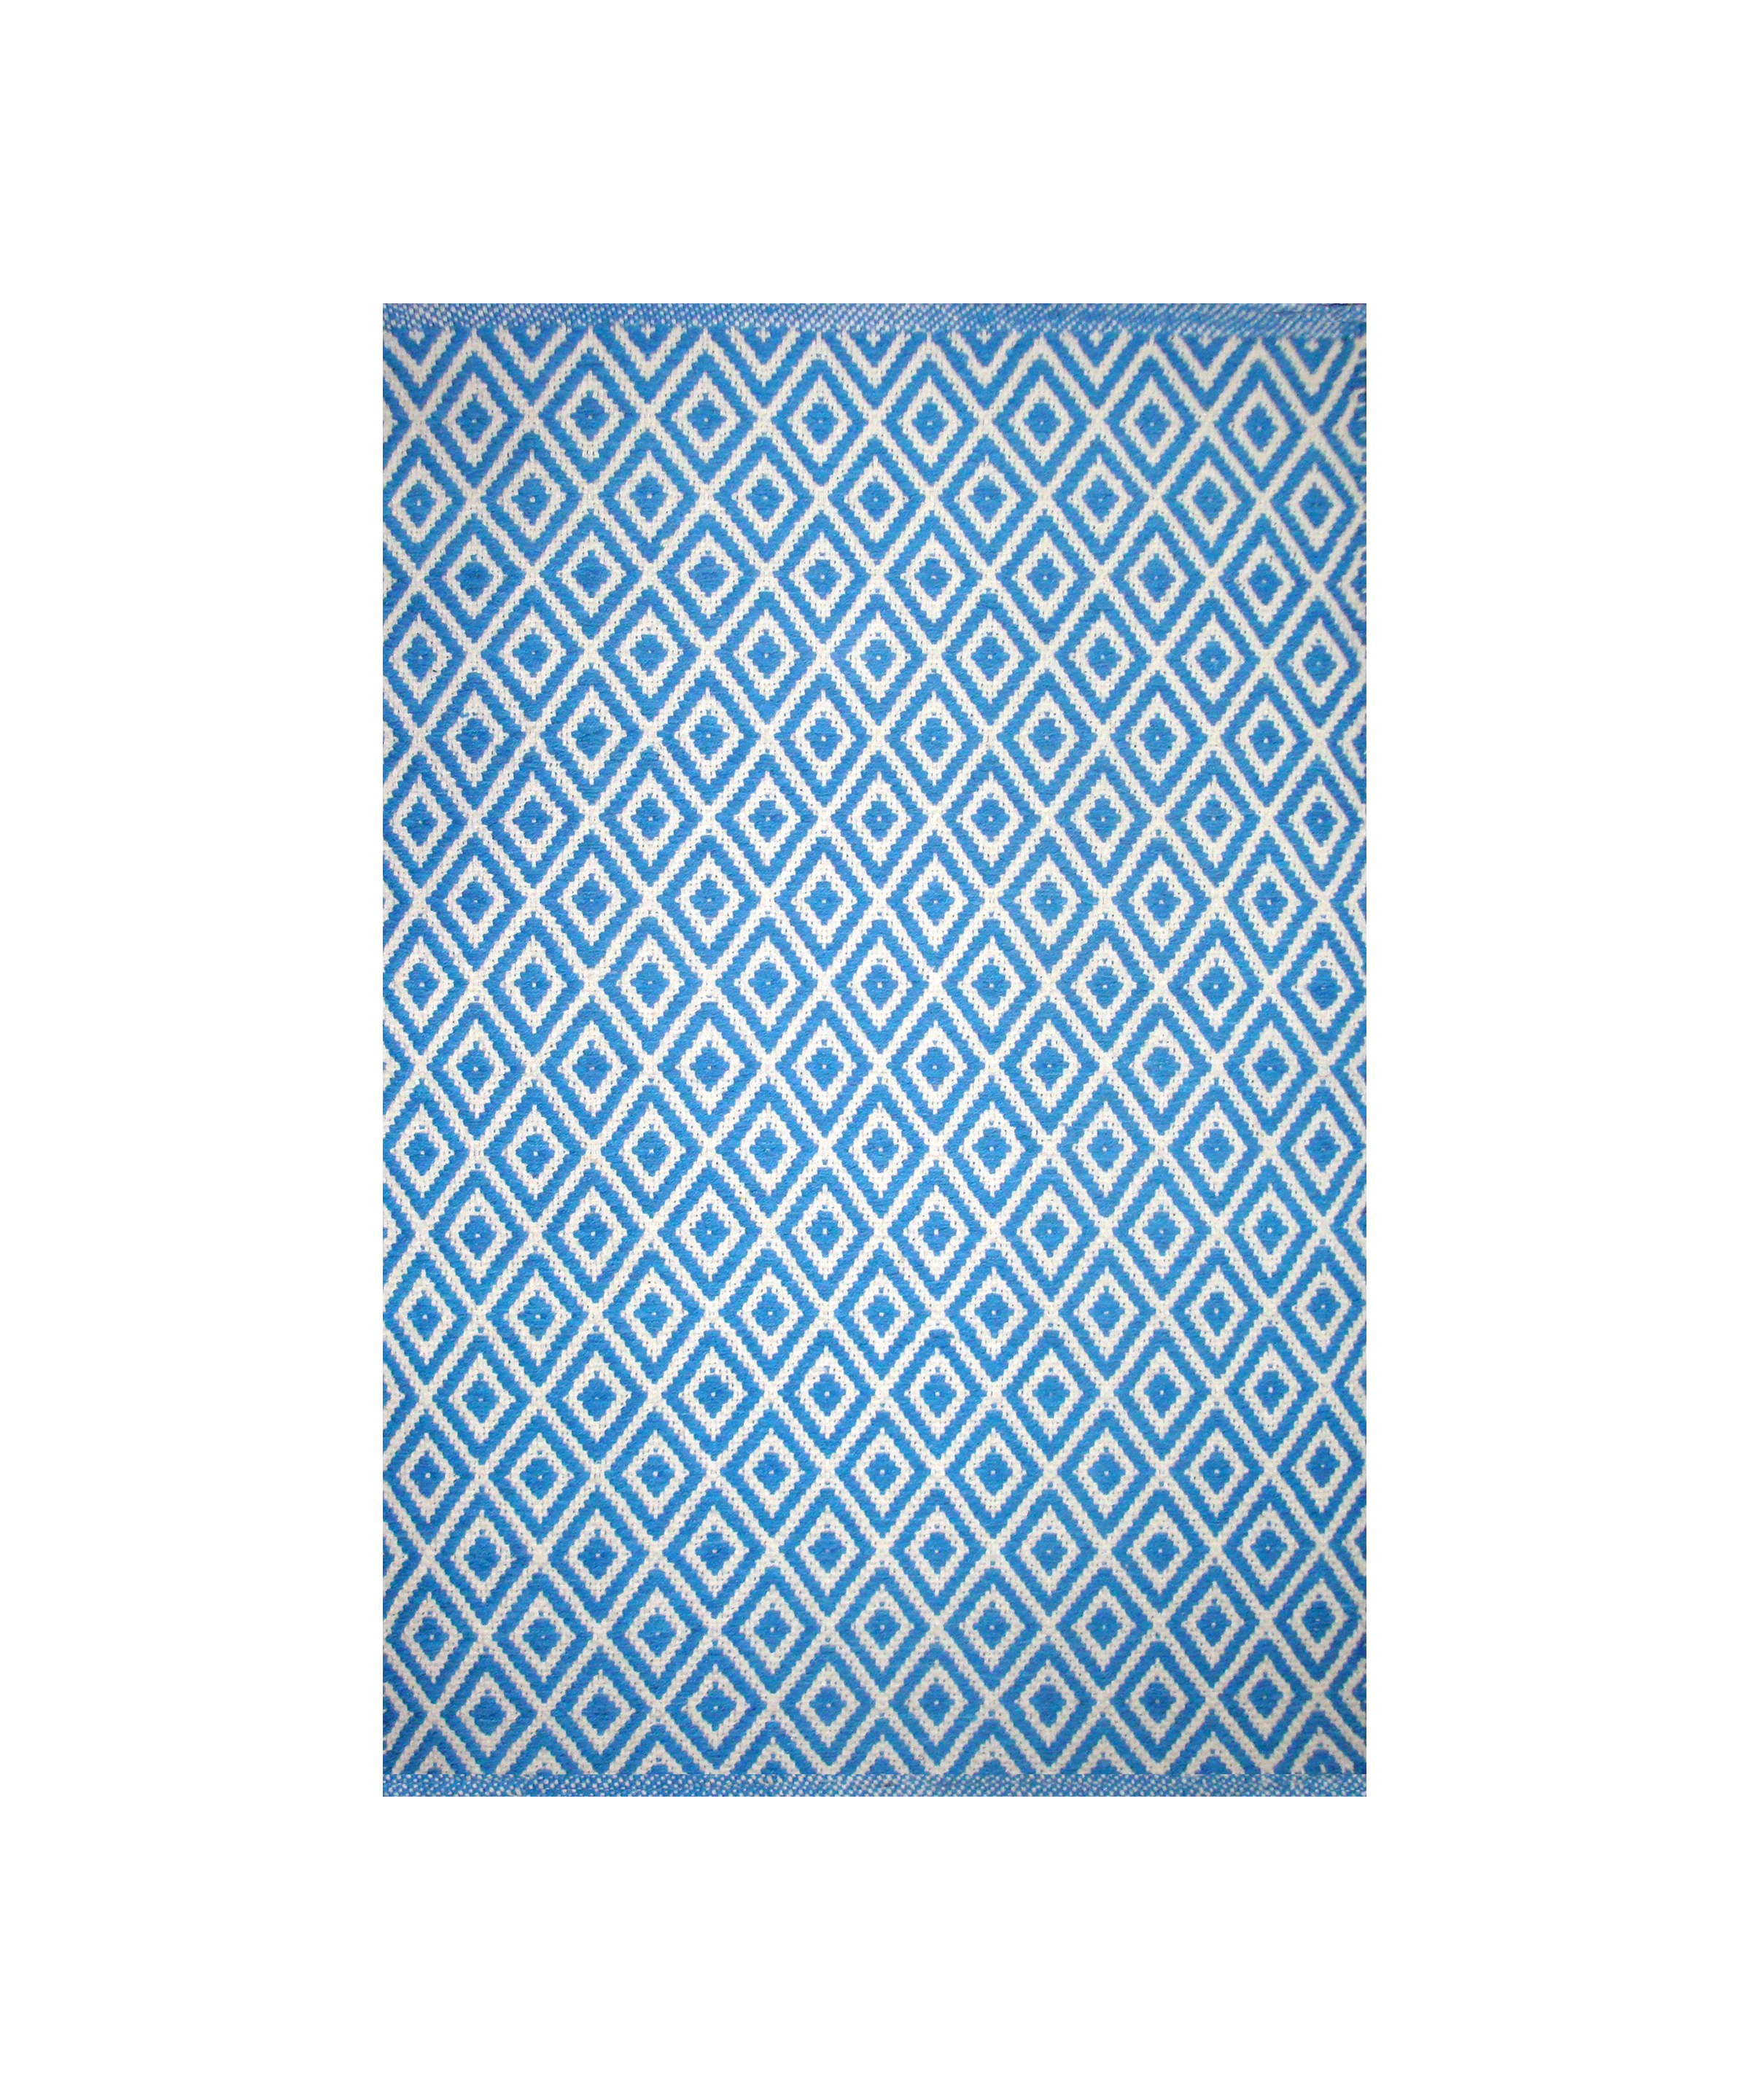 Dhurrie Lozenge Blue (Available Sizes: 2x3, 3x5, 4x6, 5x8, 7x9), Amanda's House Of Elegance  (Special Order Only)   ($27.95 – $286.95)